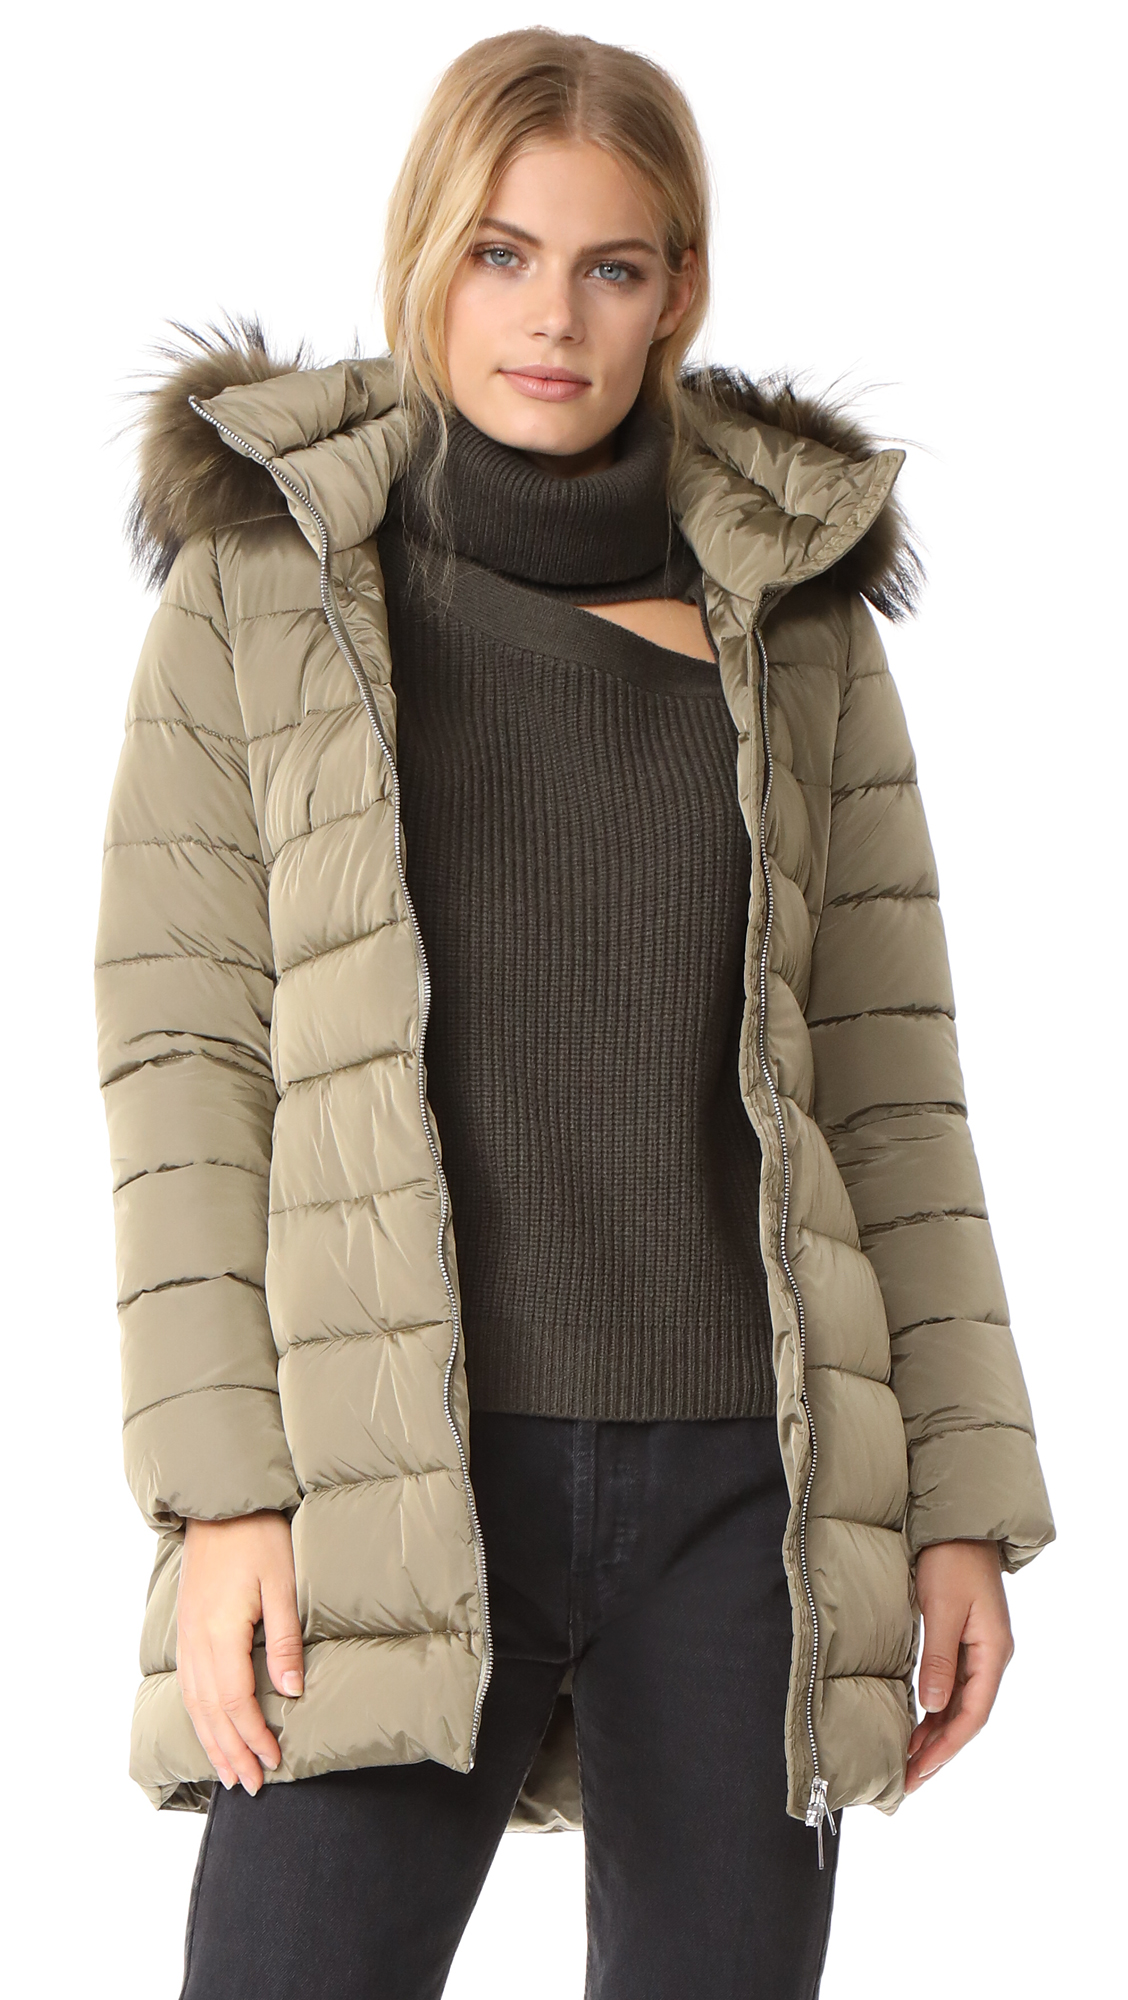 Add Down Down Coat with Fur - Army